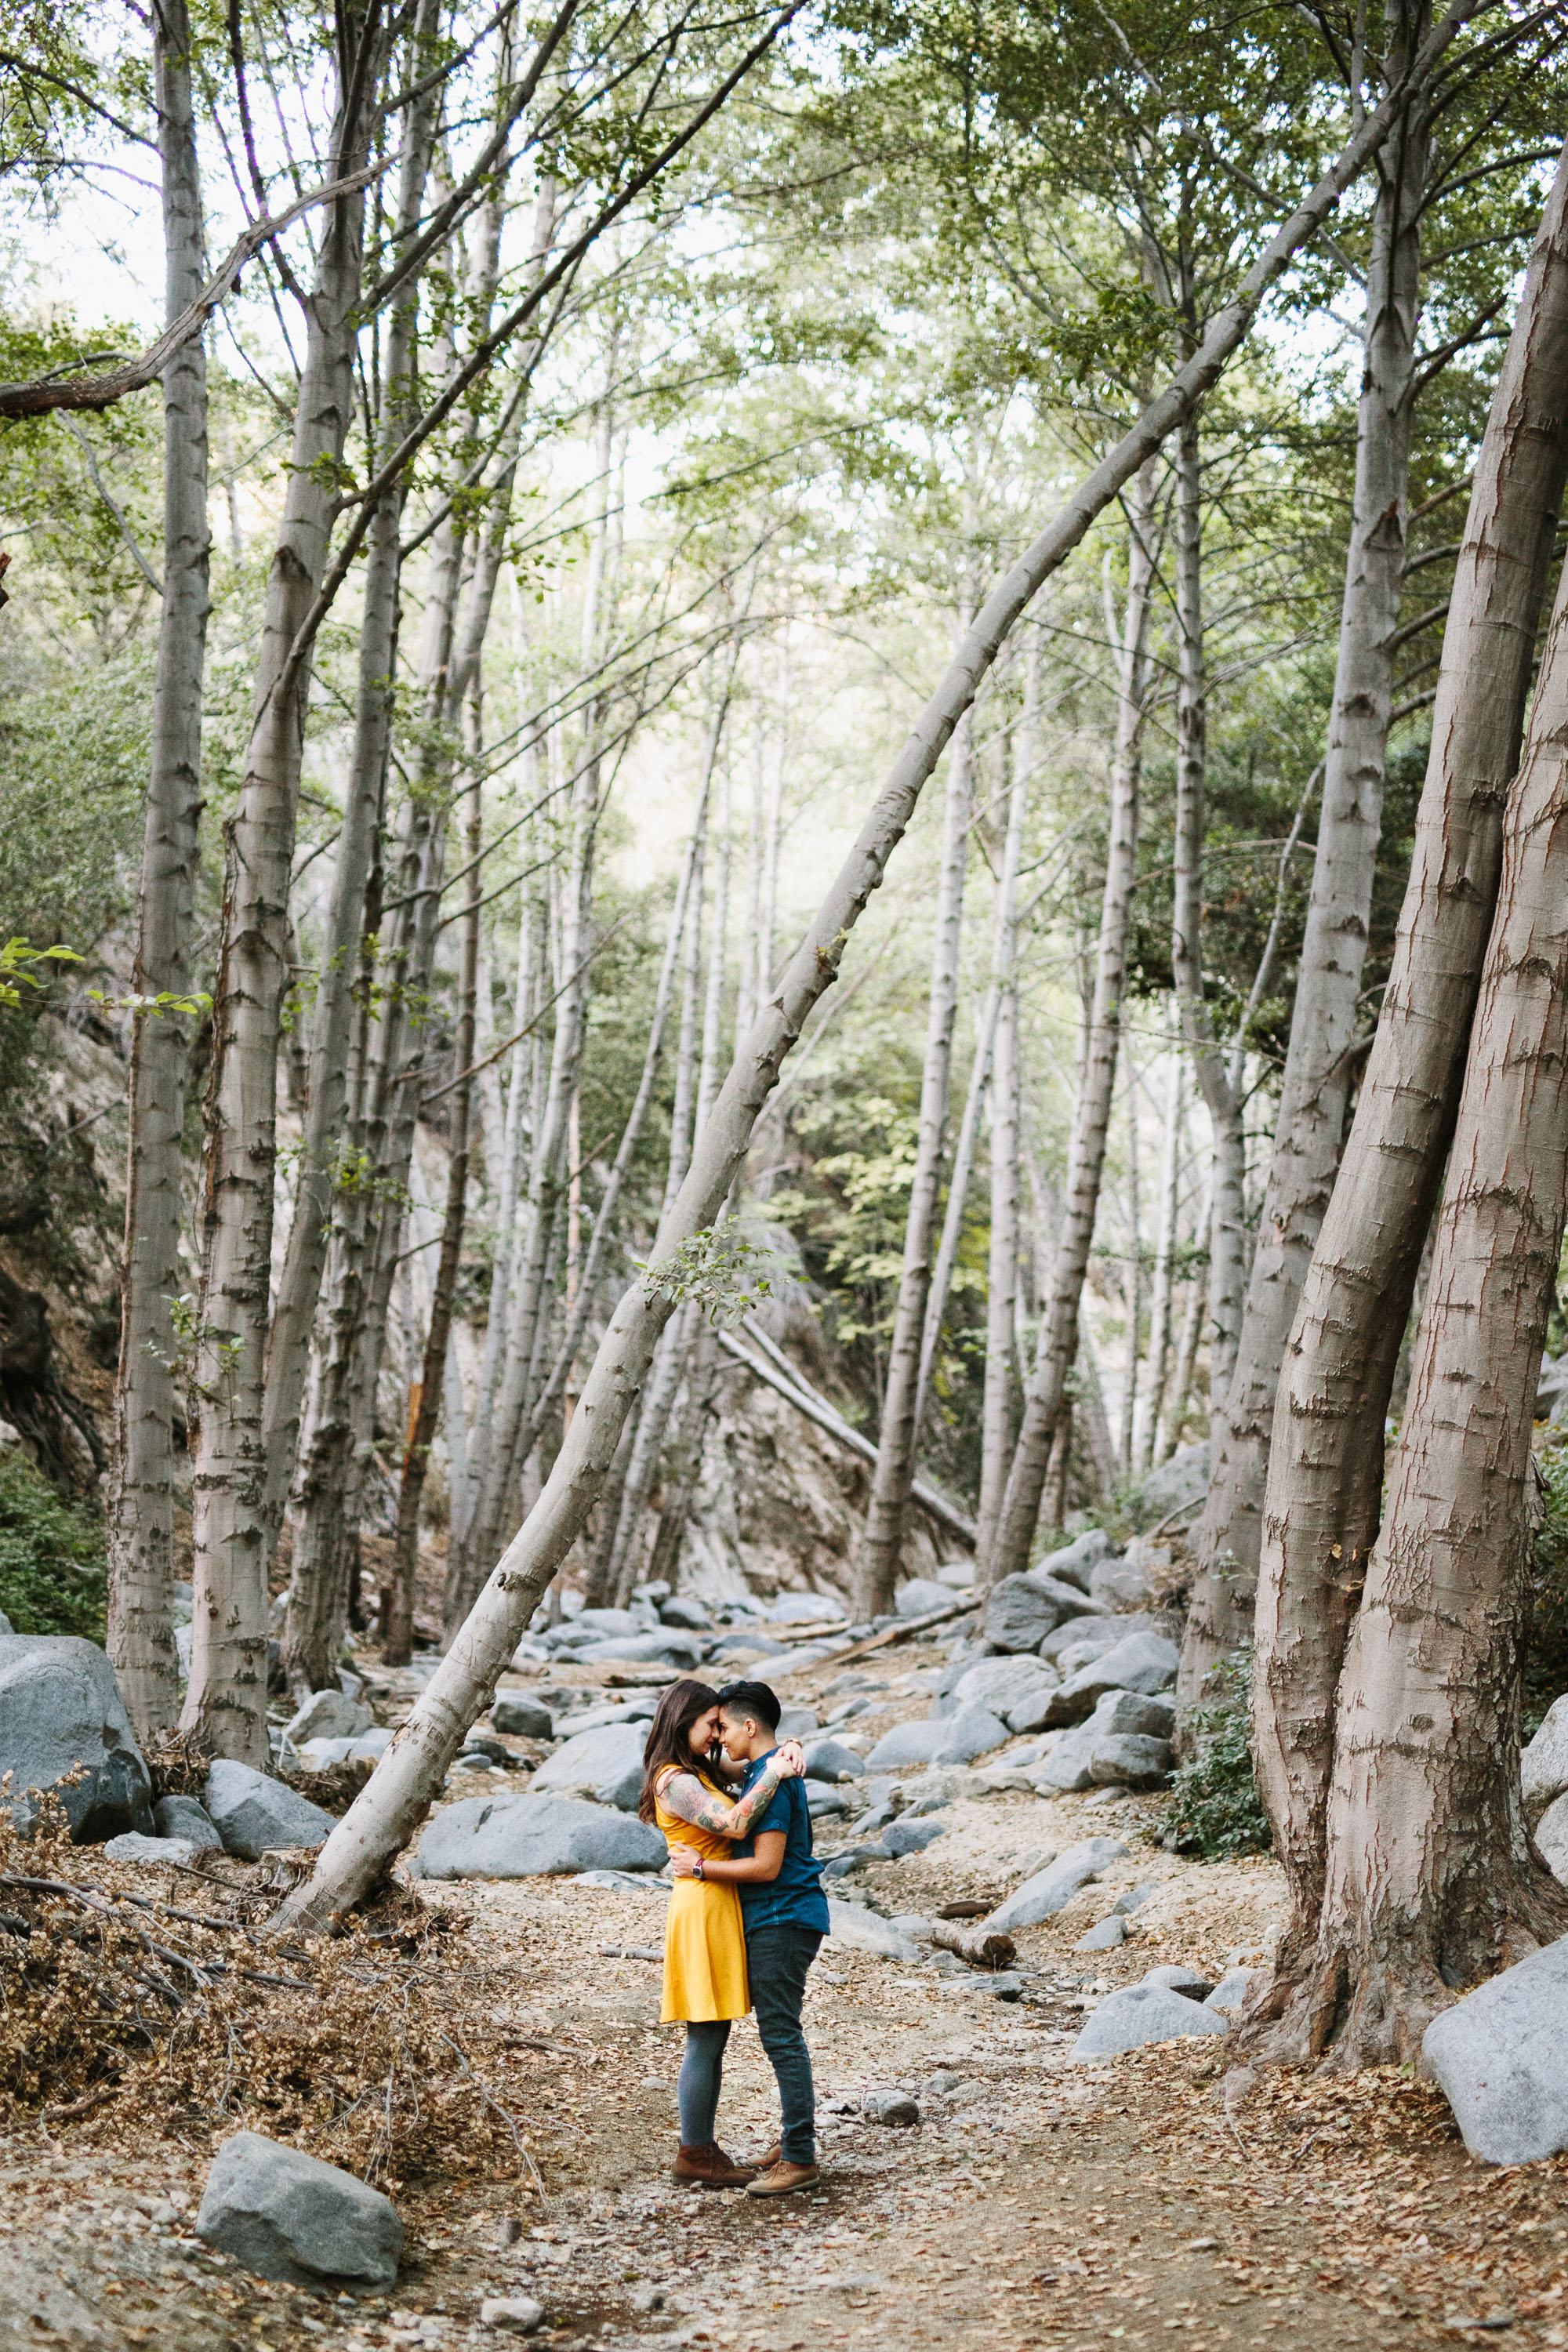 www-marycostaphotography-com-angeles-national-forest-engagement-0016